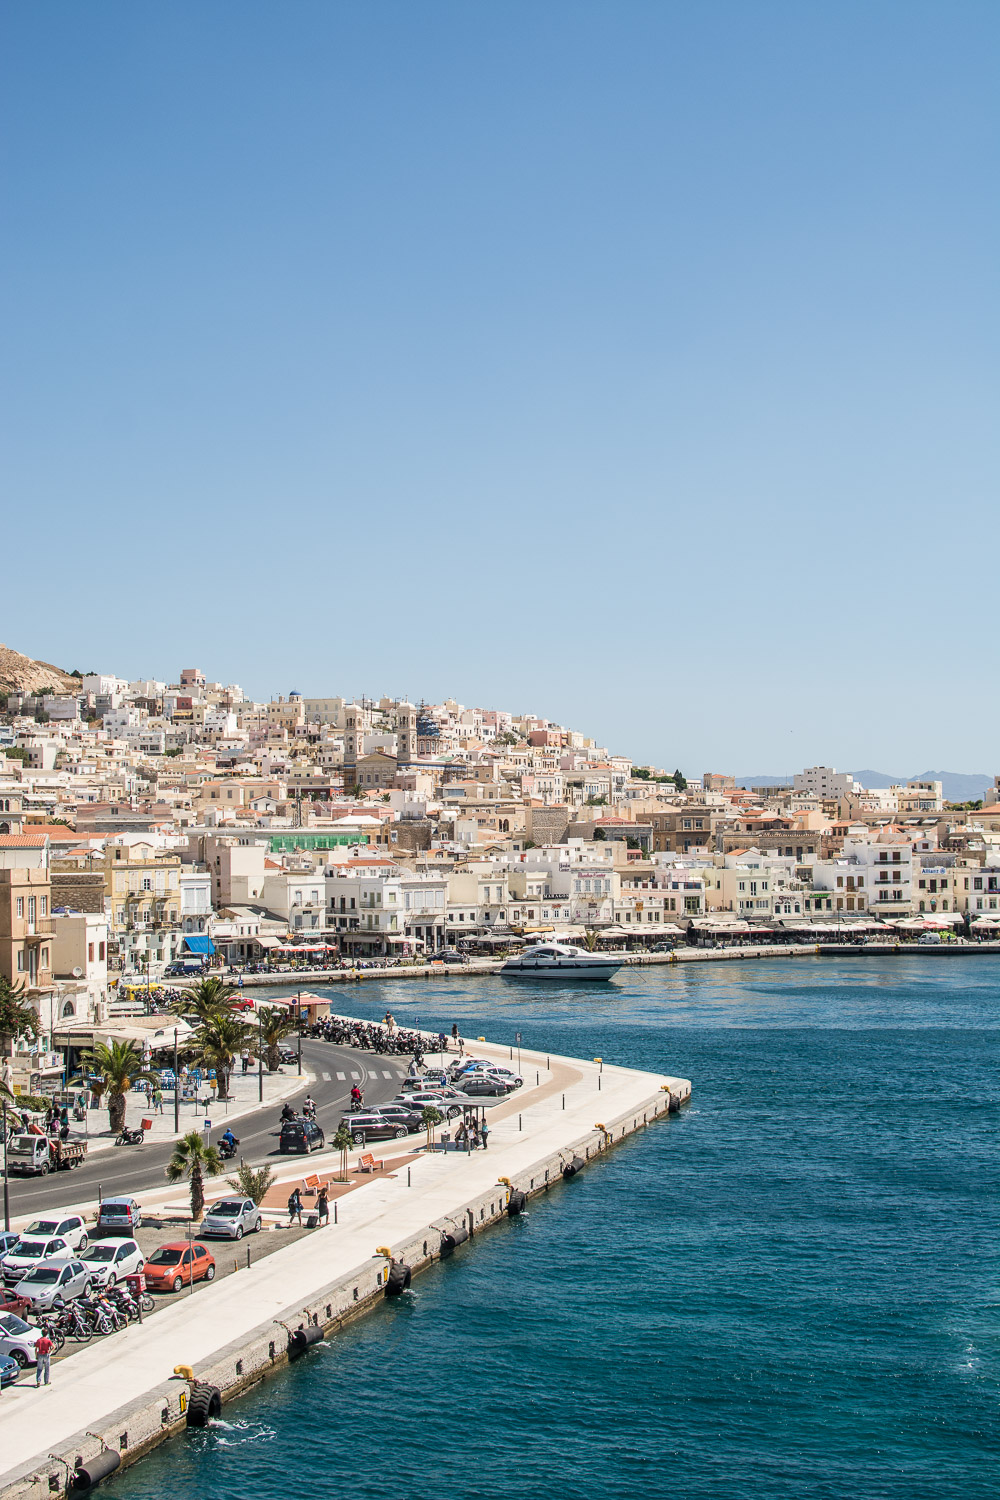 Port of Syros, one of the Greek Islands